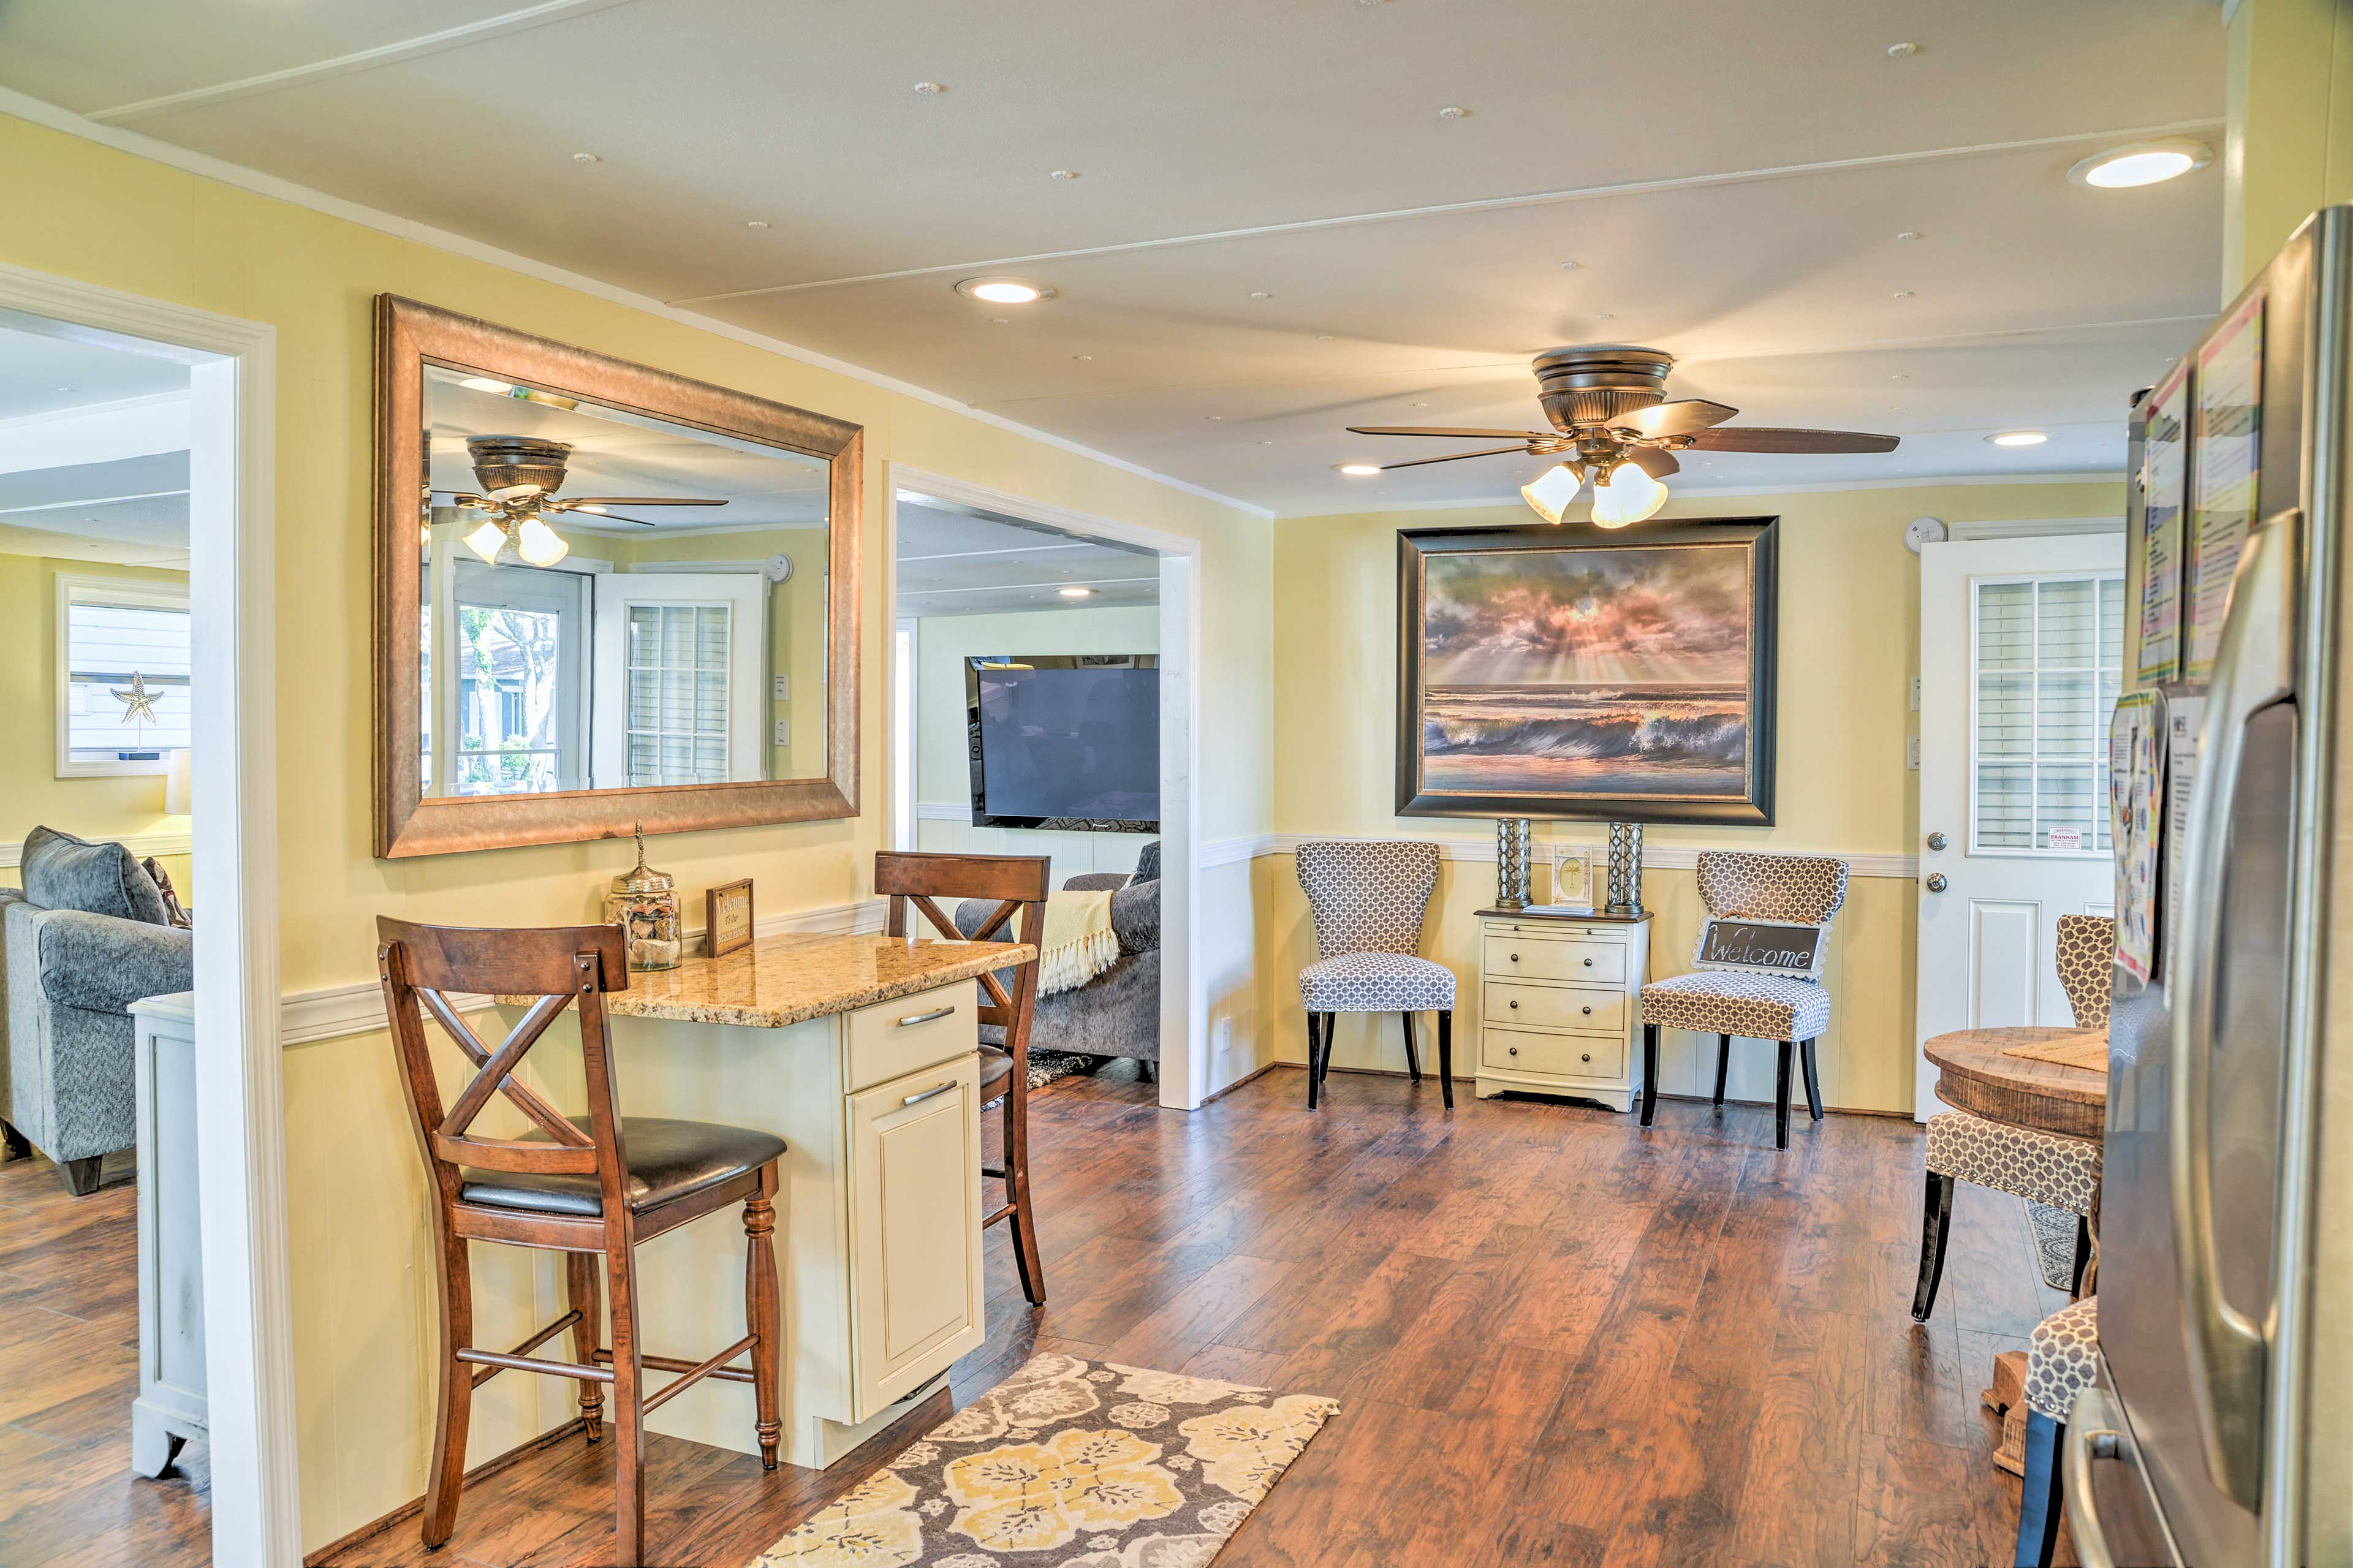 This home features 1,400 square feet of well-appointed living space.